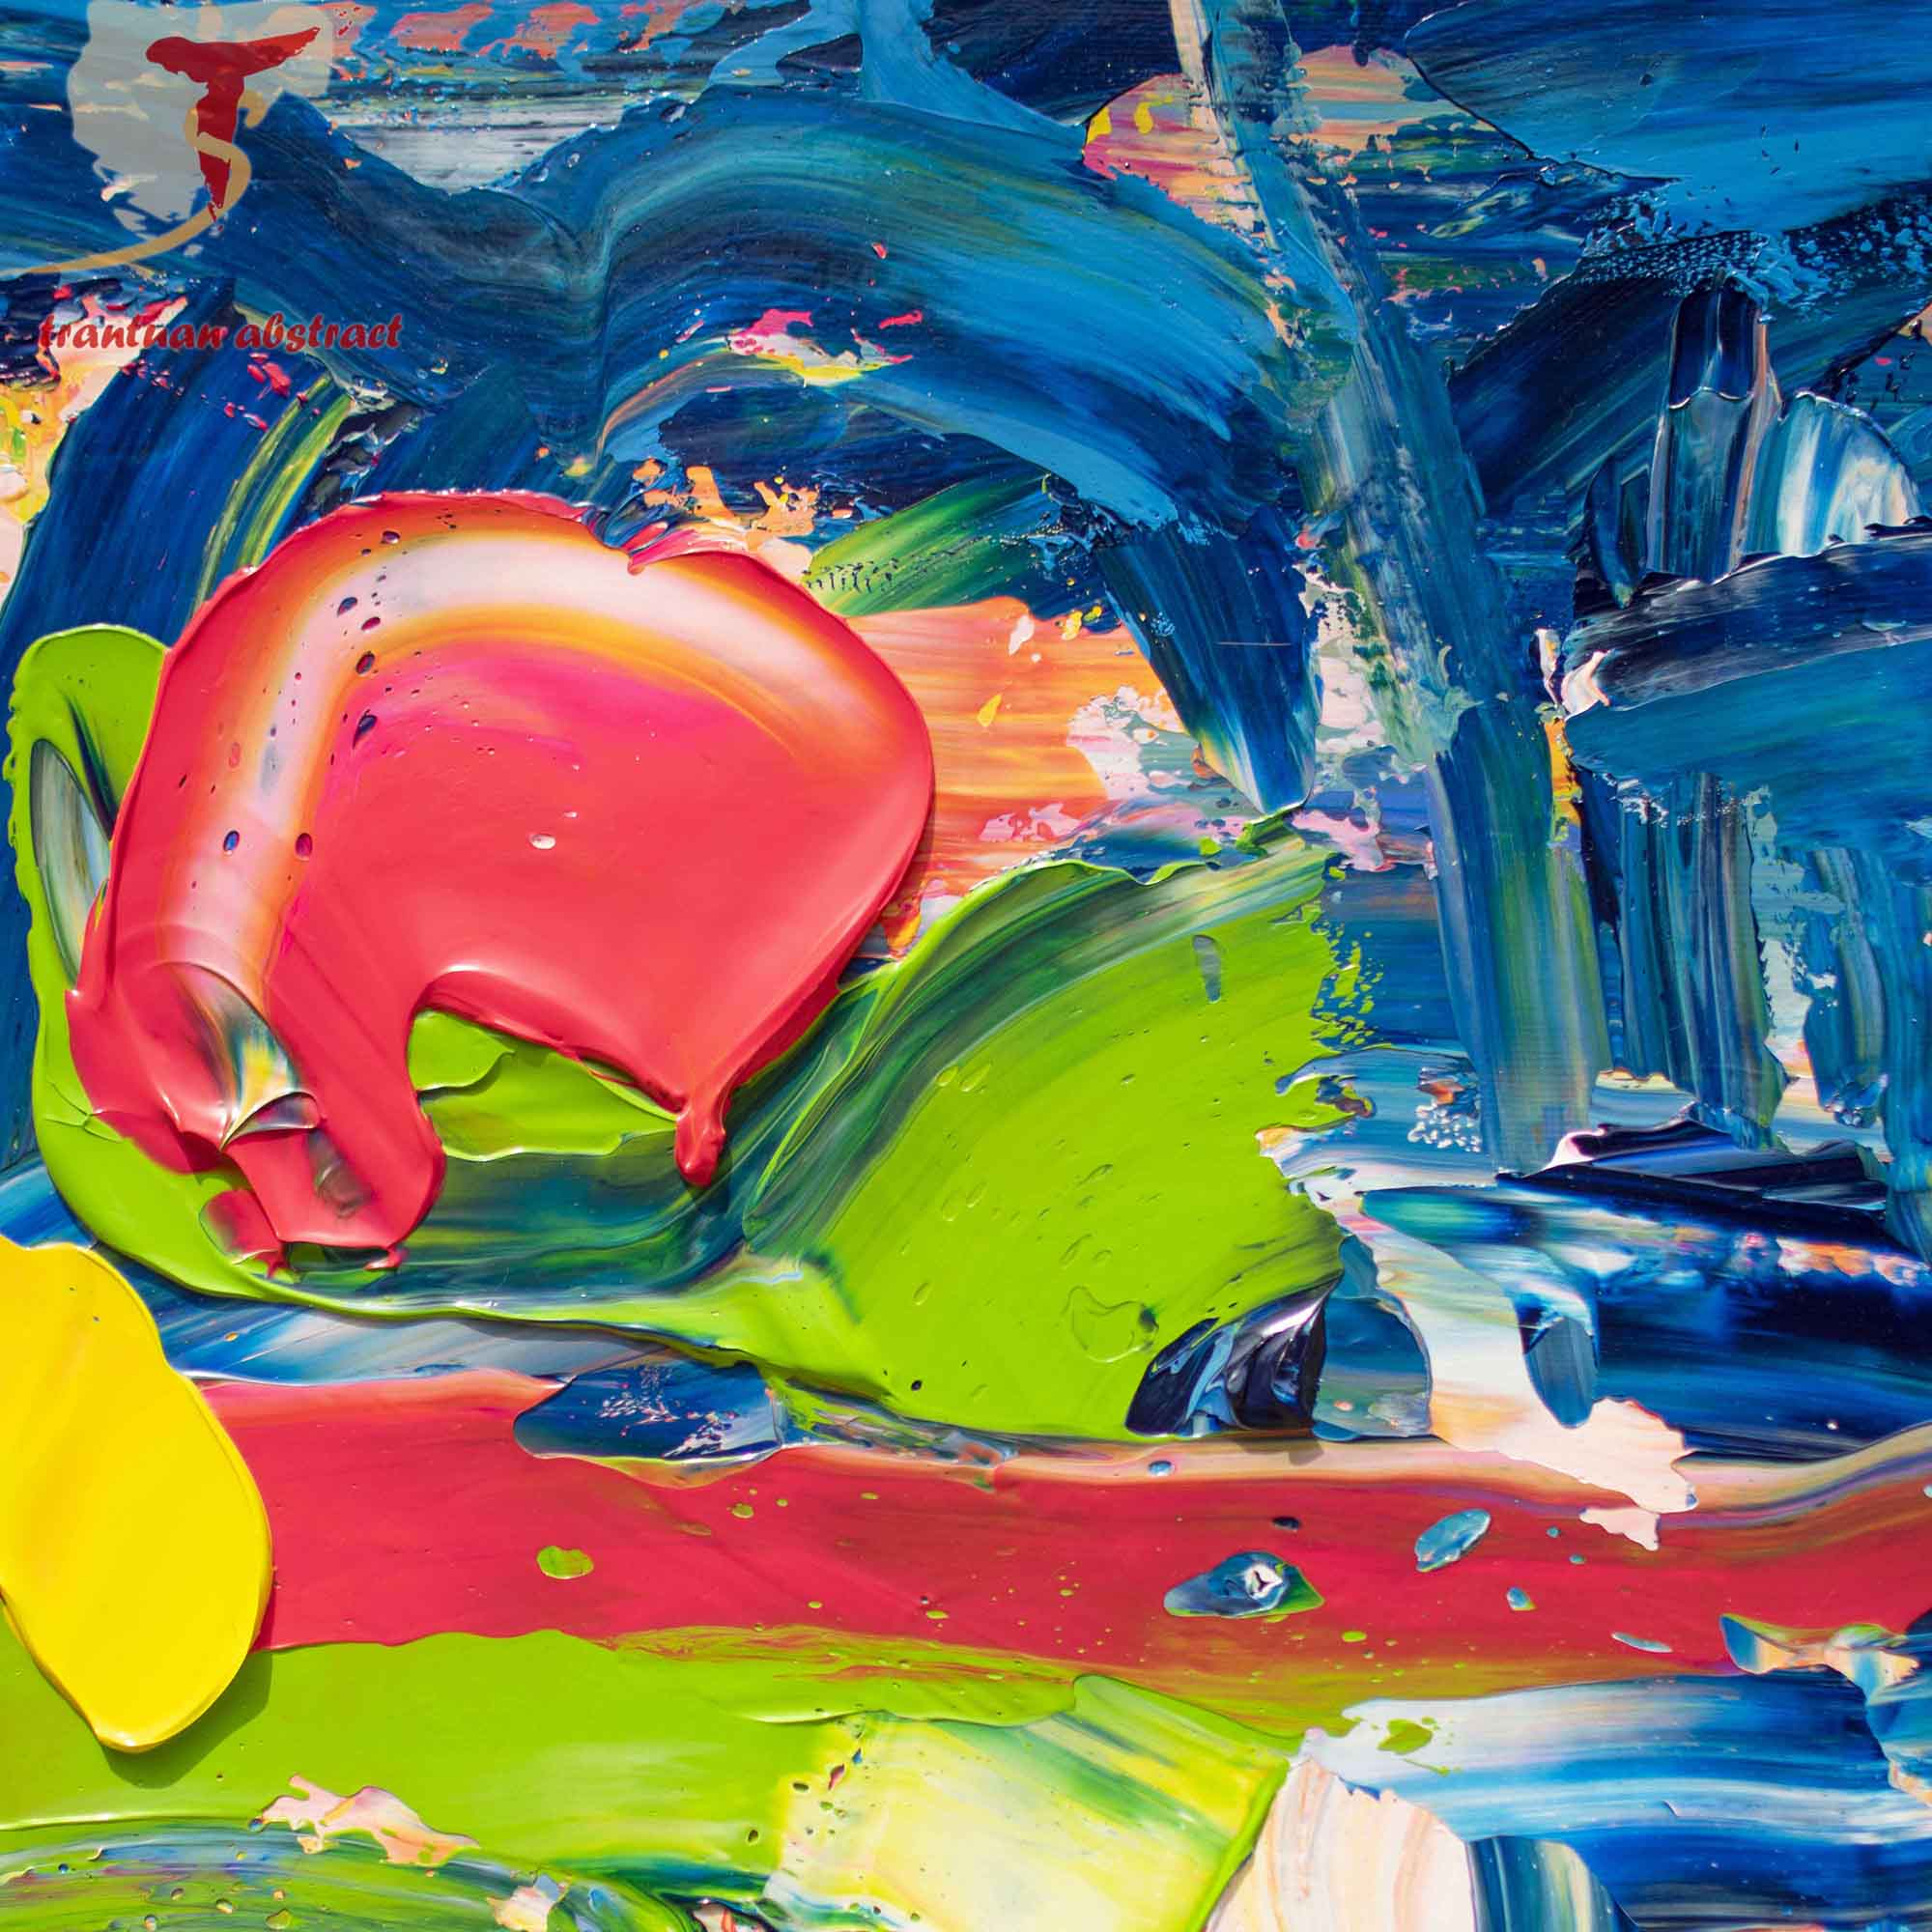 Tran Tuan Abstract Love of Children 2021 135 x 80 x 5 cm Acrylic on Canvas Painting Detail